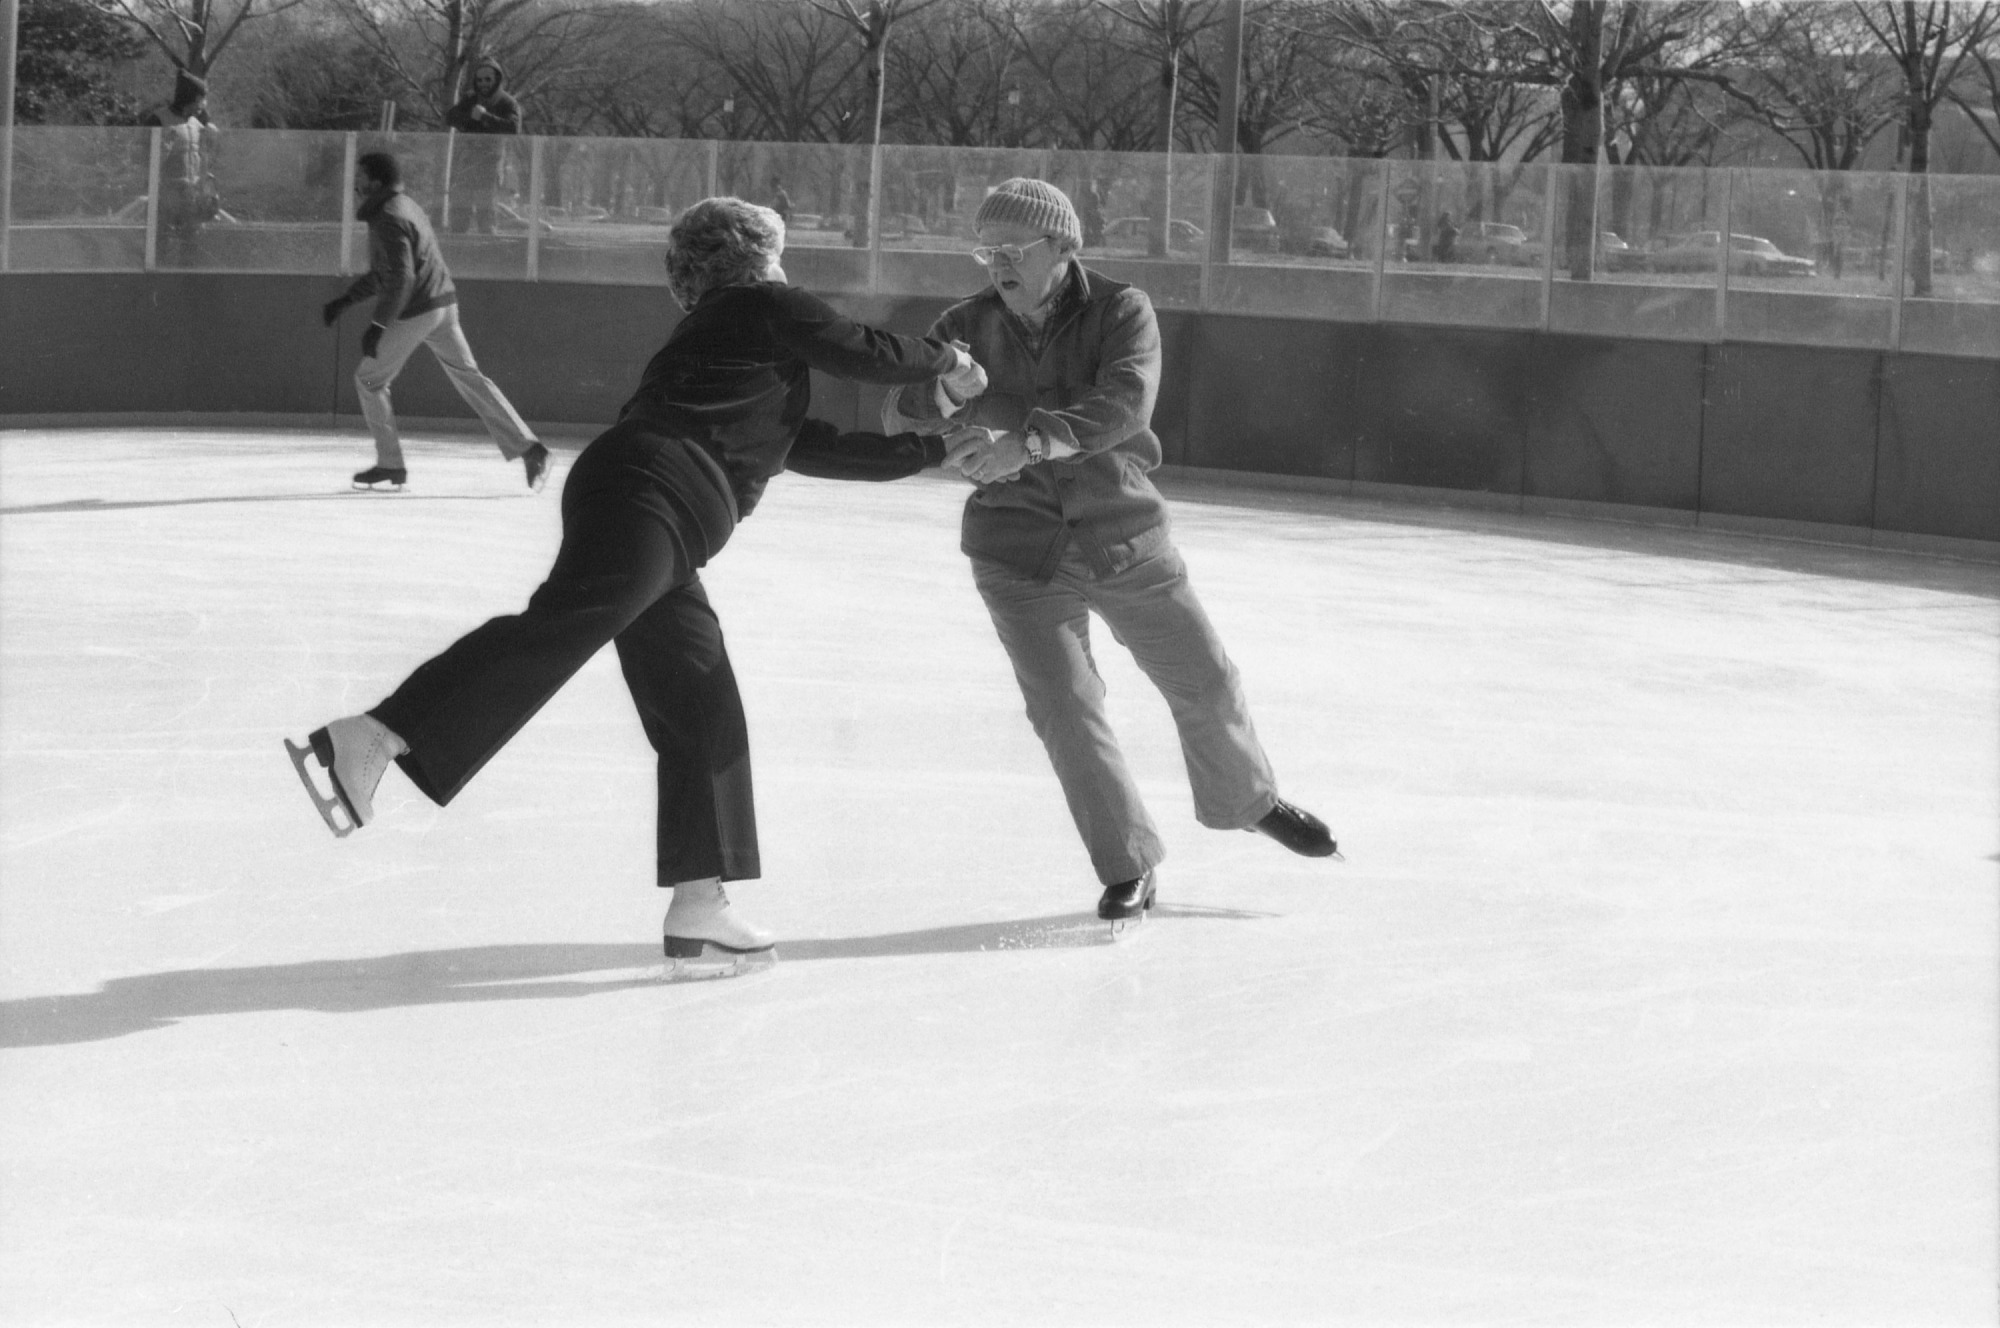 Phyllis and Paul Spangler Skate on the National Mall Outdoor Rink